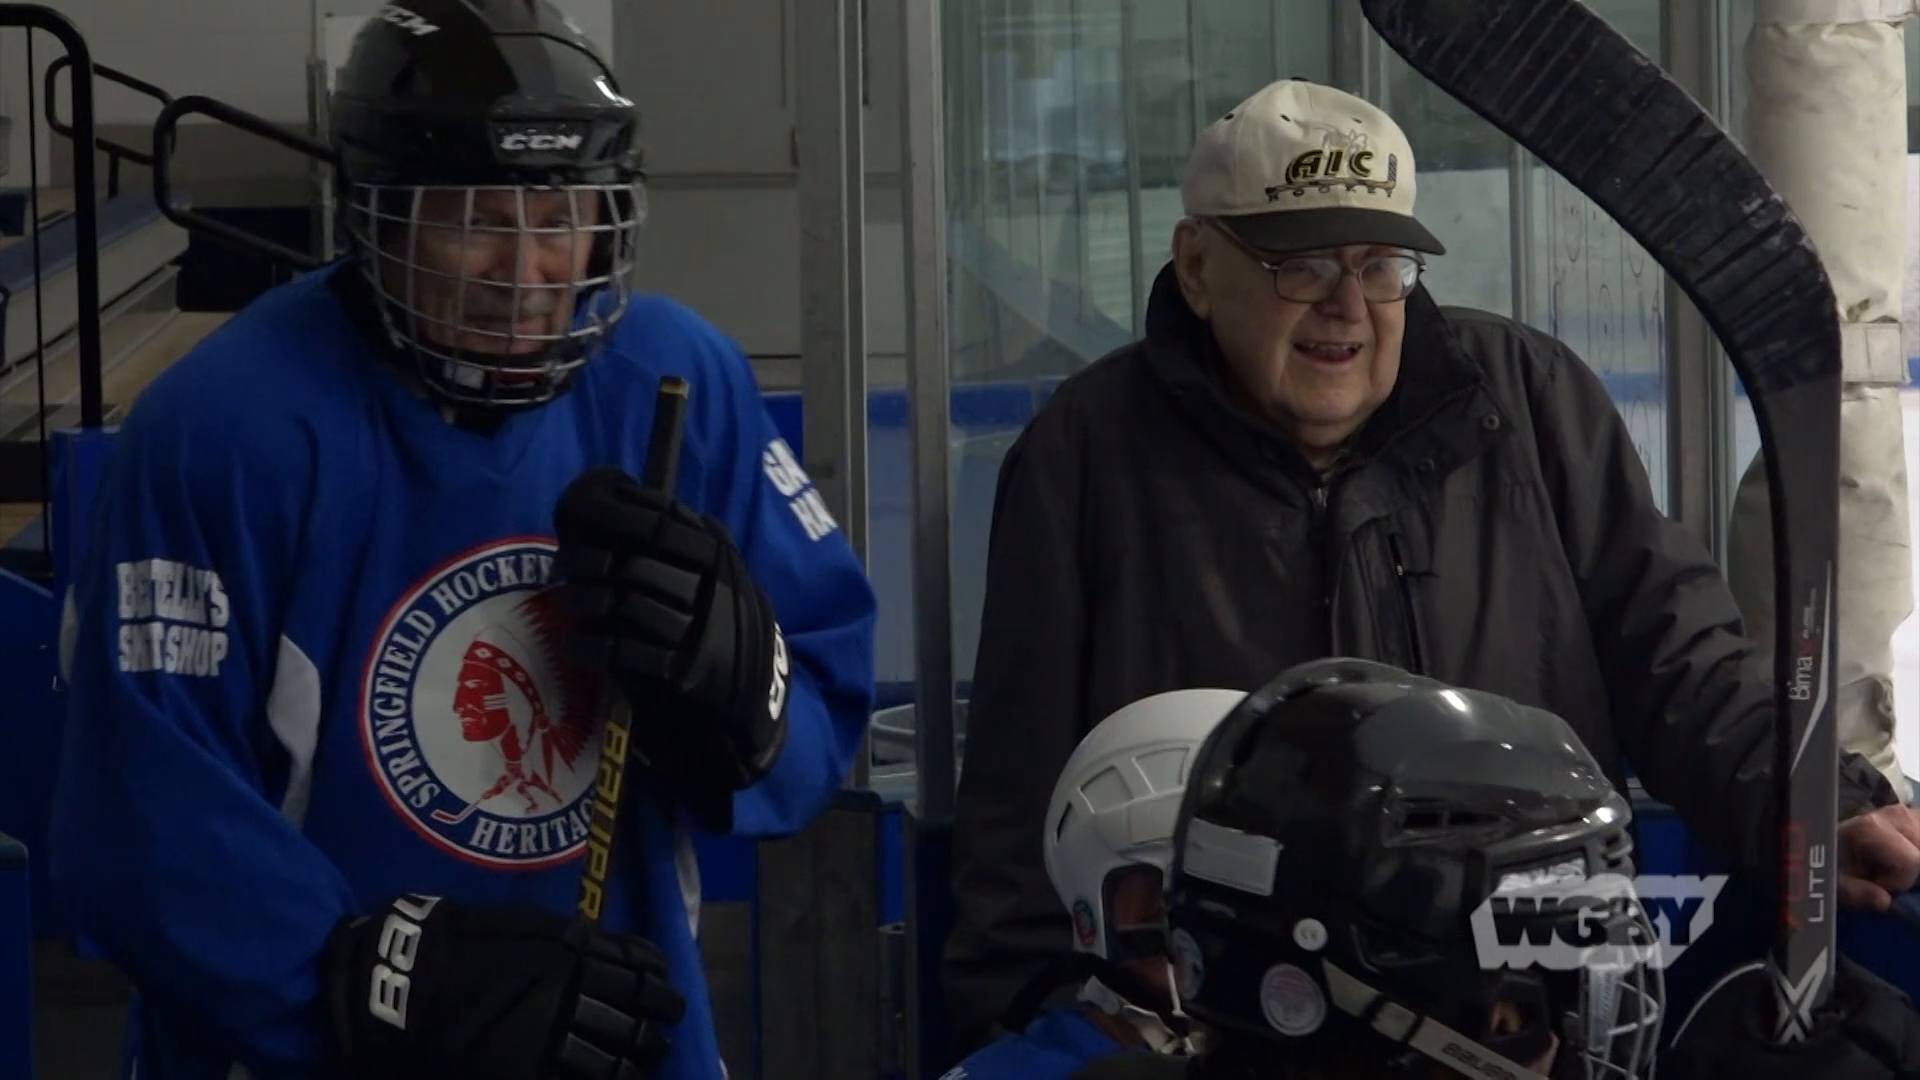 Hit the ice with the senior hockey team, made up of 60-70+ year old western Mass locals who will compete at the Mass. Senior Games this summer.